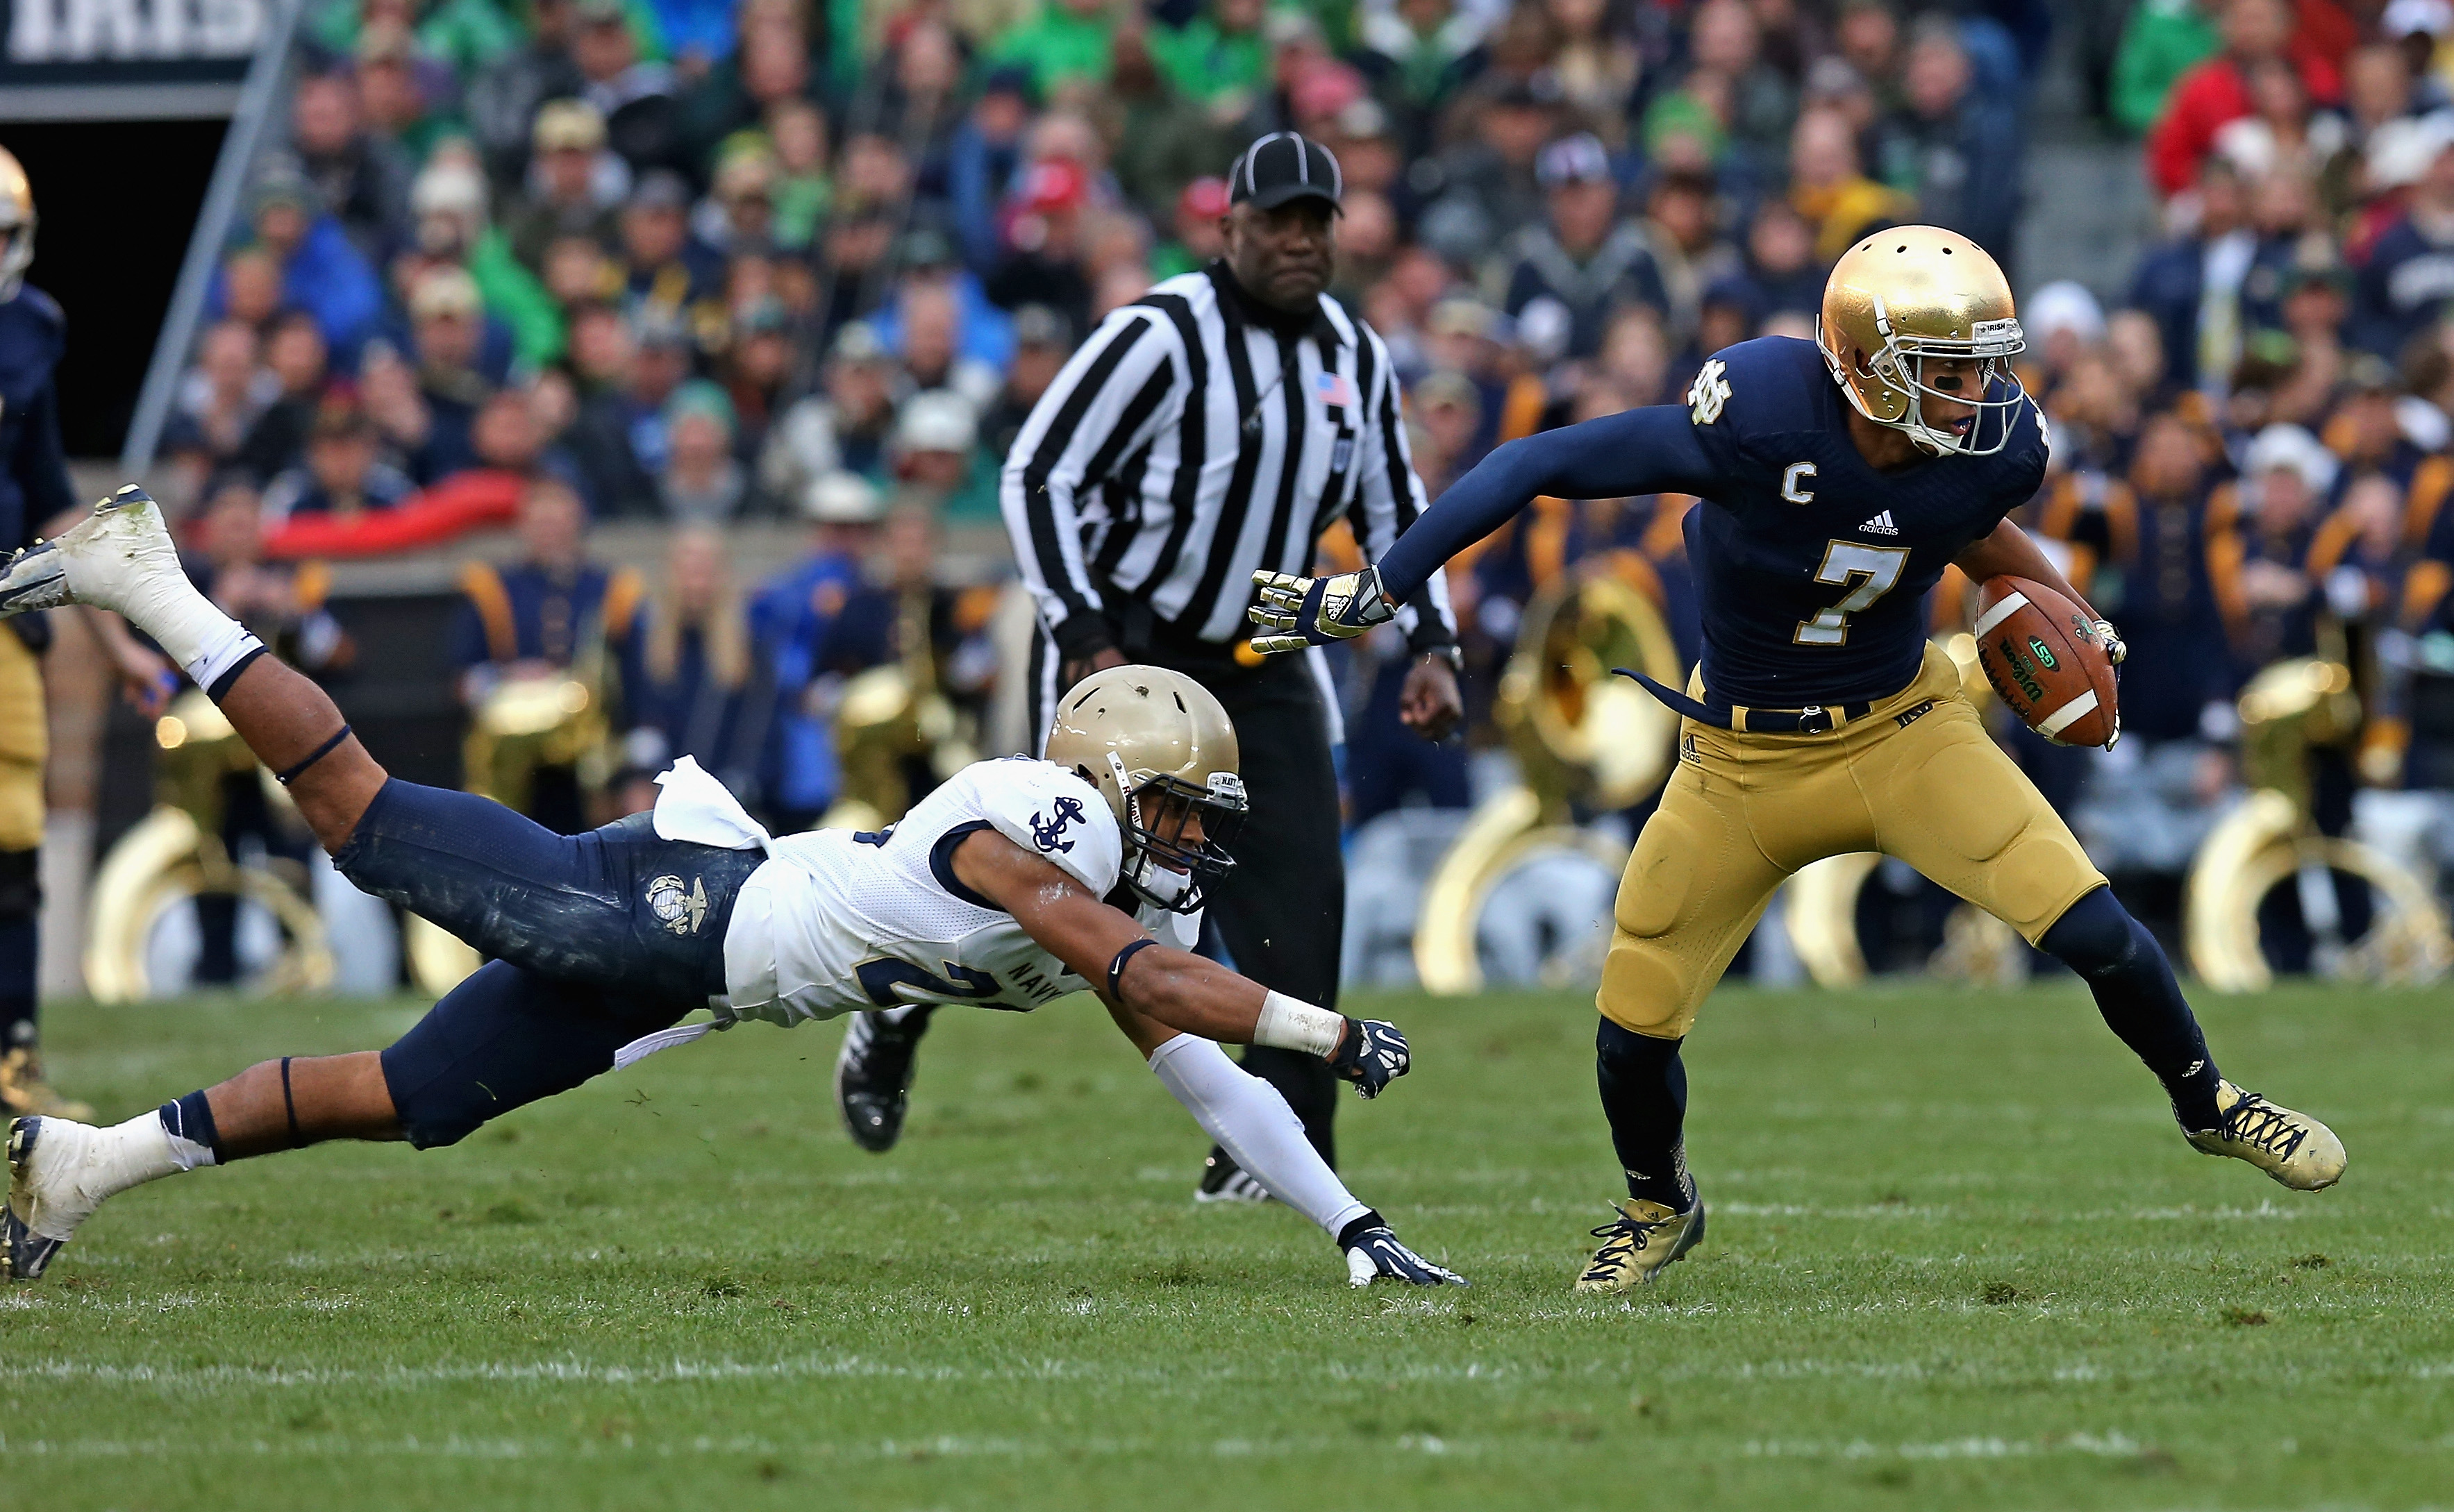 Notre Dame Keeps Slim Playoff Hopes Alive With Victory Over Navy